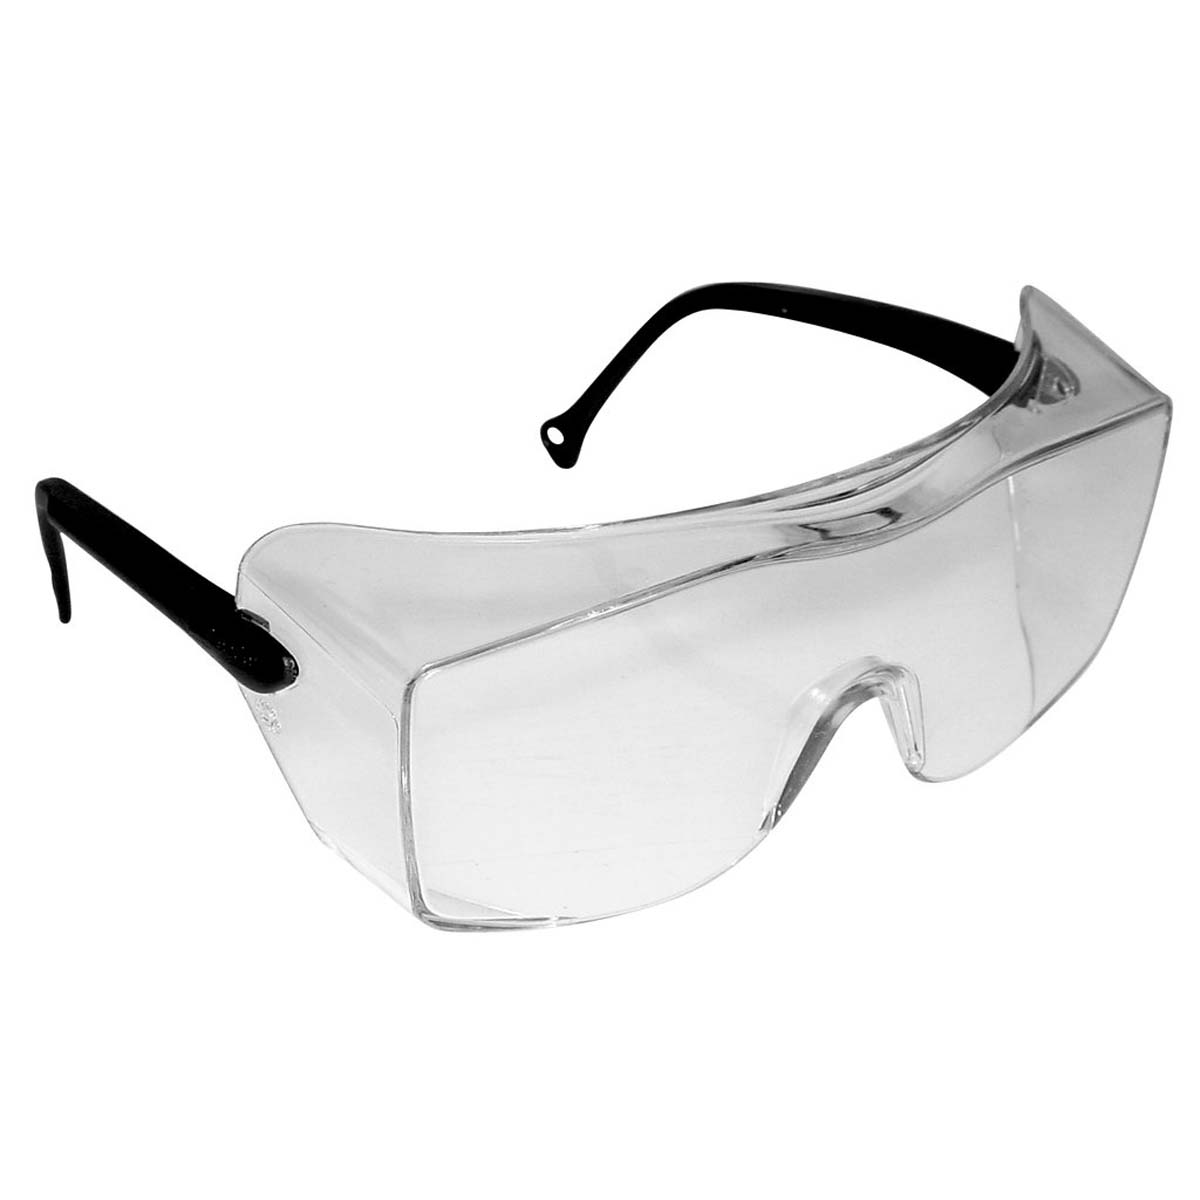 3M OX Protective Eyewear 12159-00000-20 Clear Lens, Black Temple